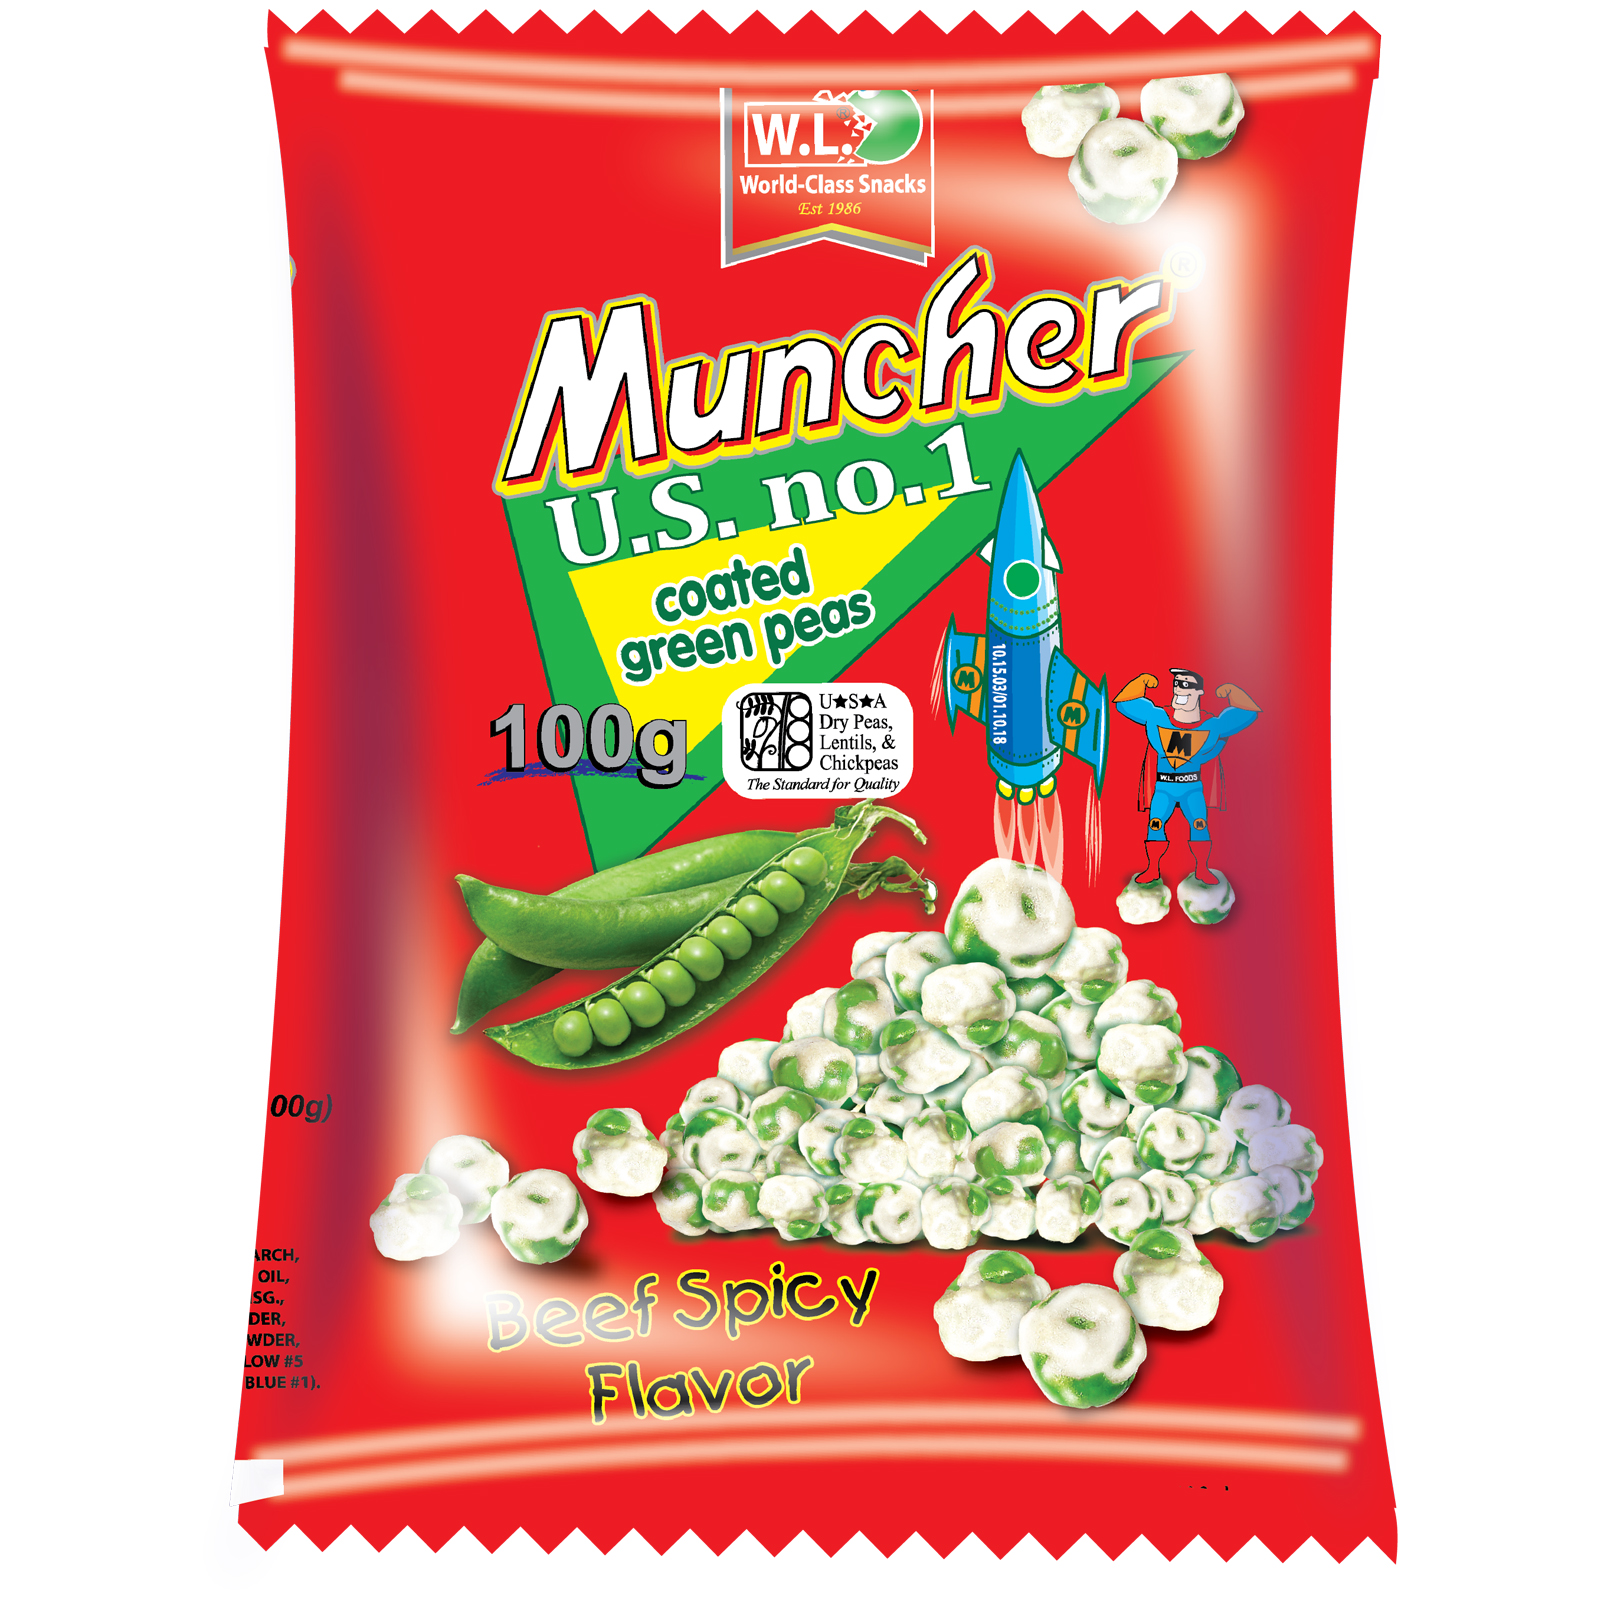 Muncher Green Peas Coated Beef Spicy Flavor 100g